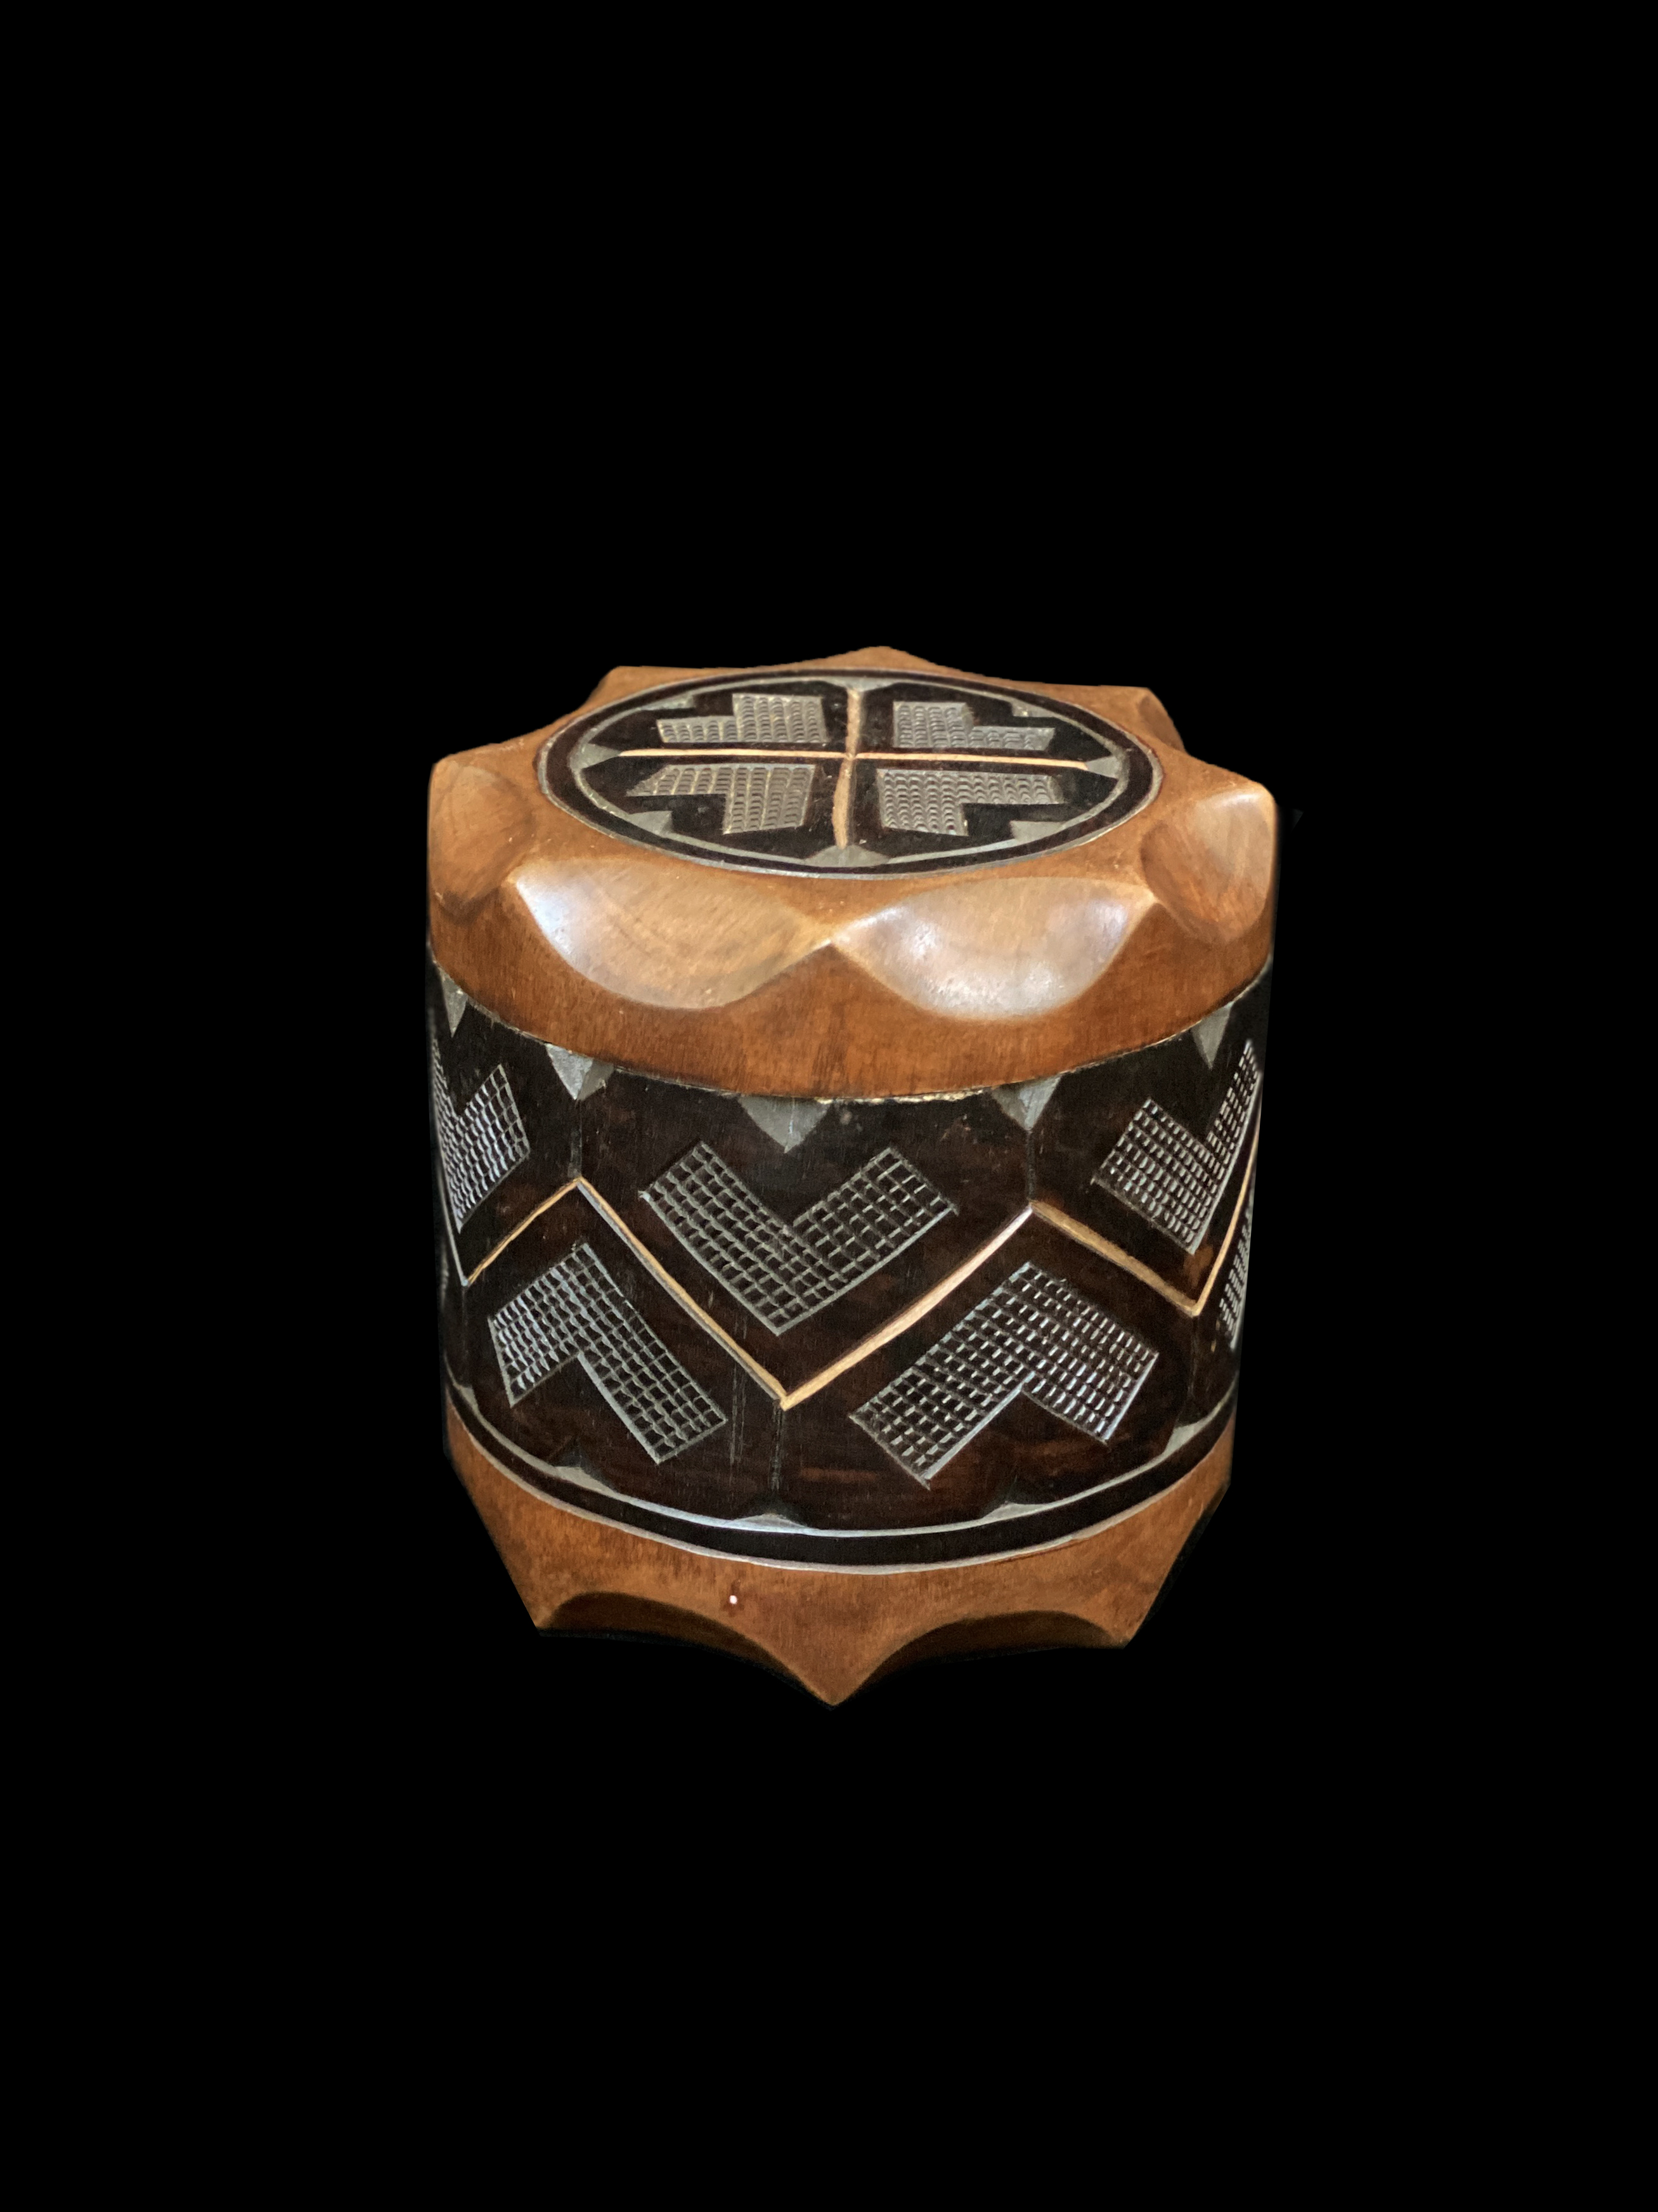 Decorative Hand Carved Wooden Box - Kuba People, D.R. Congo